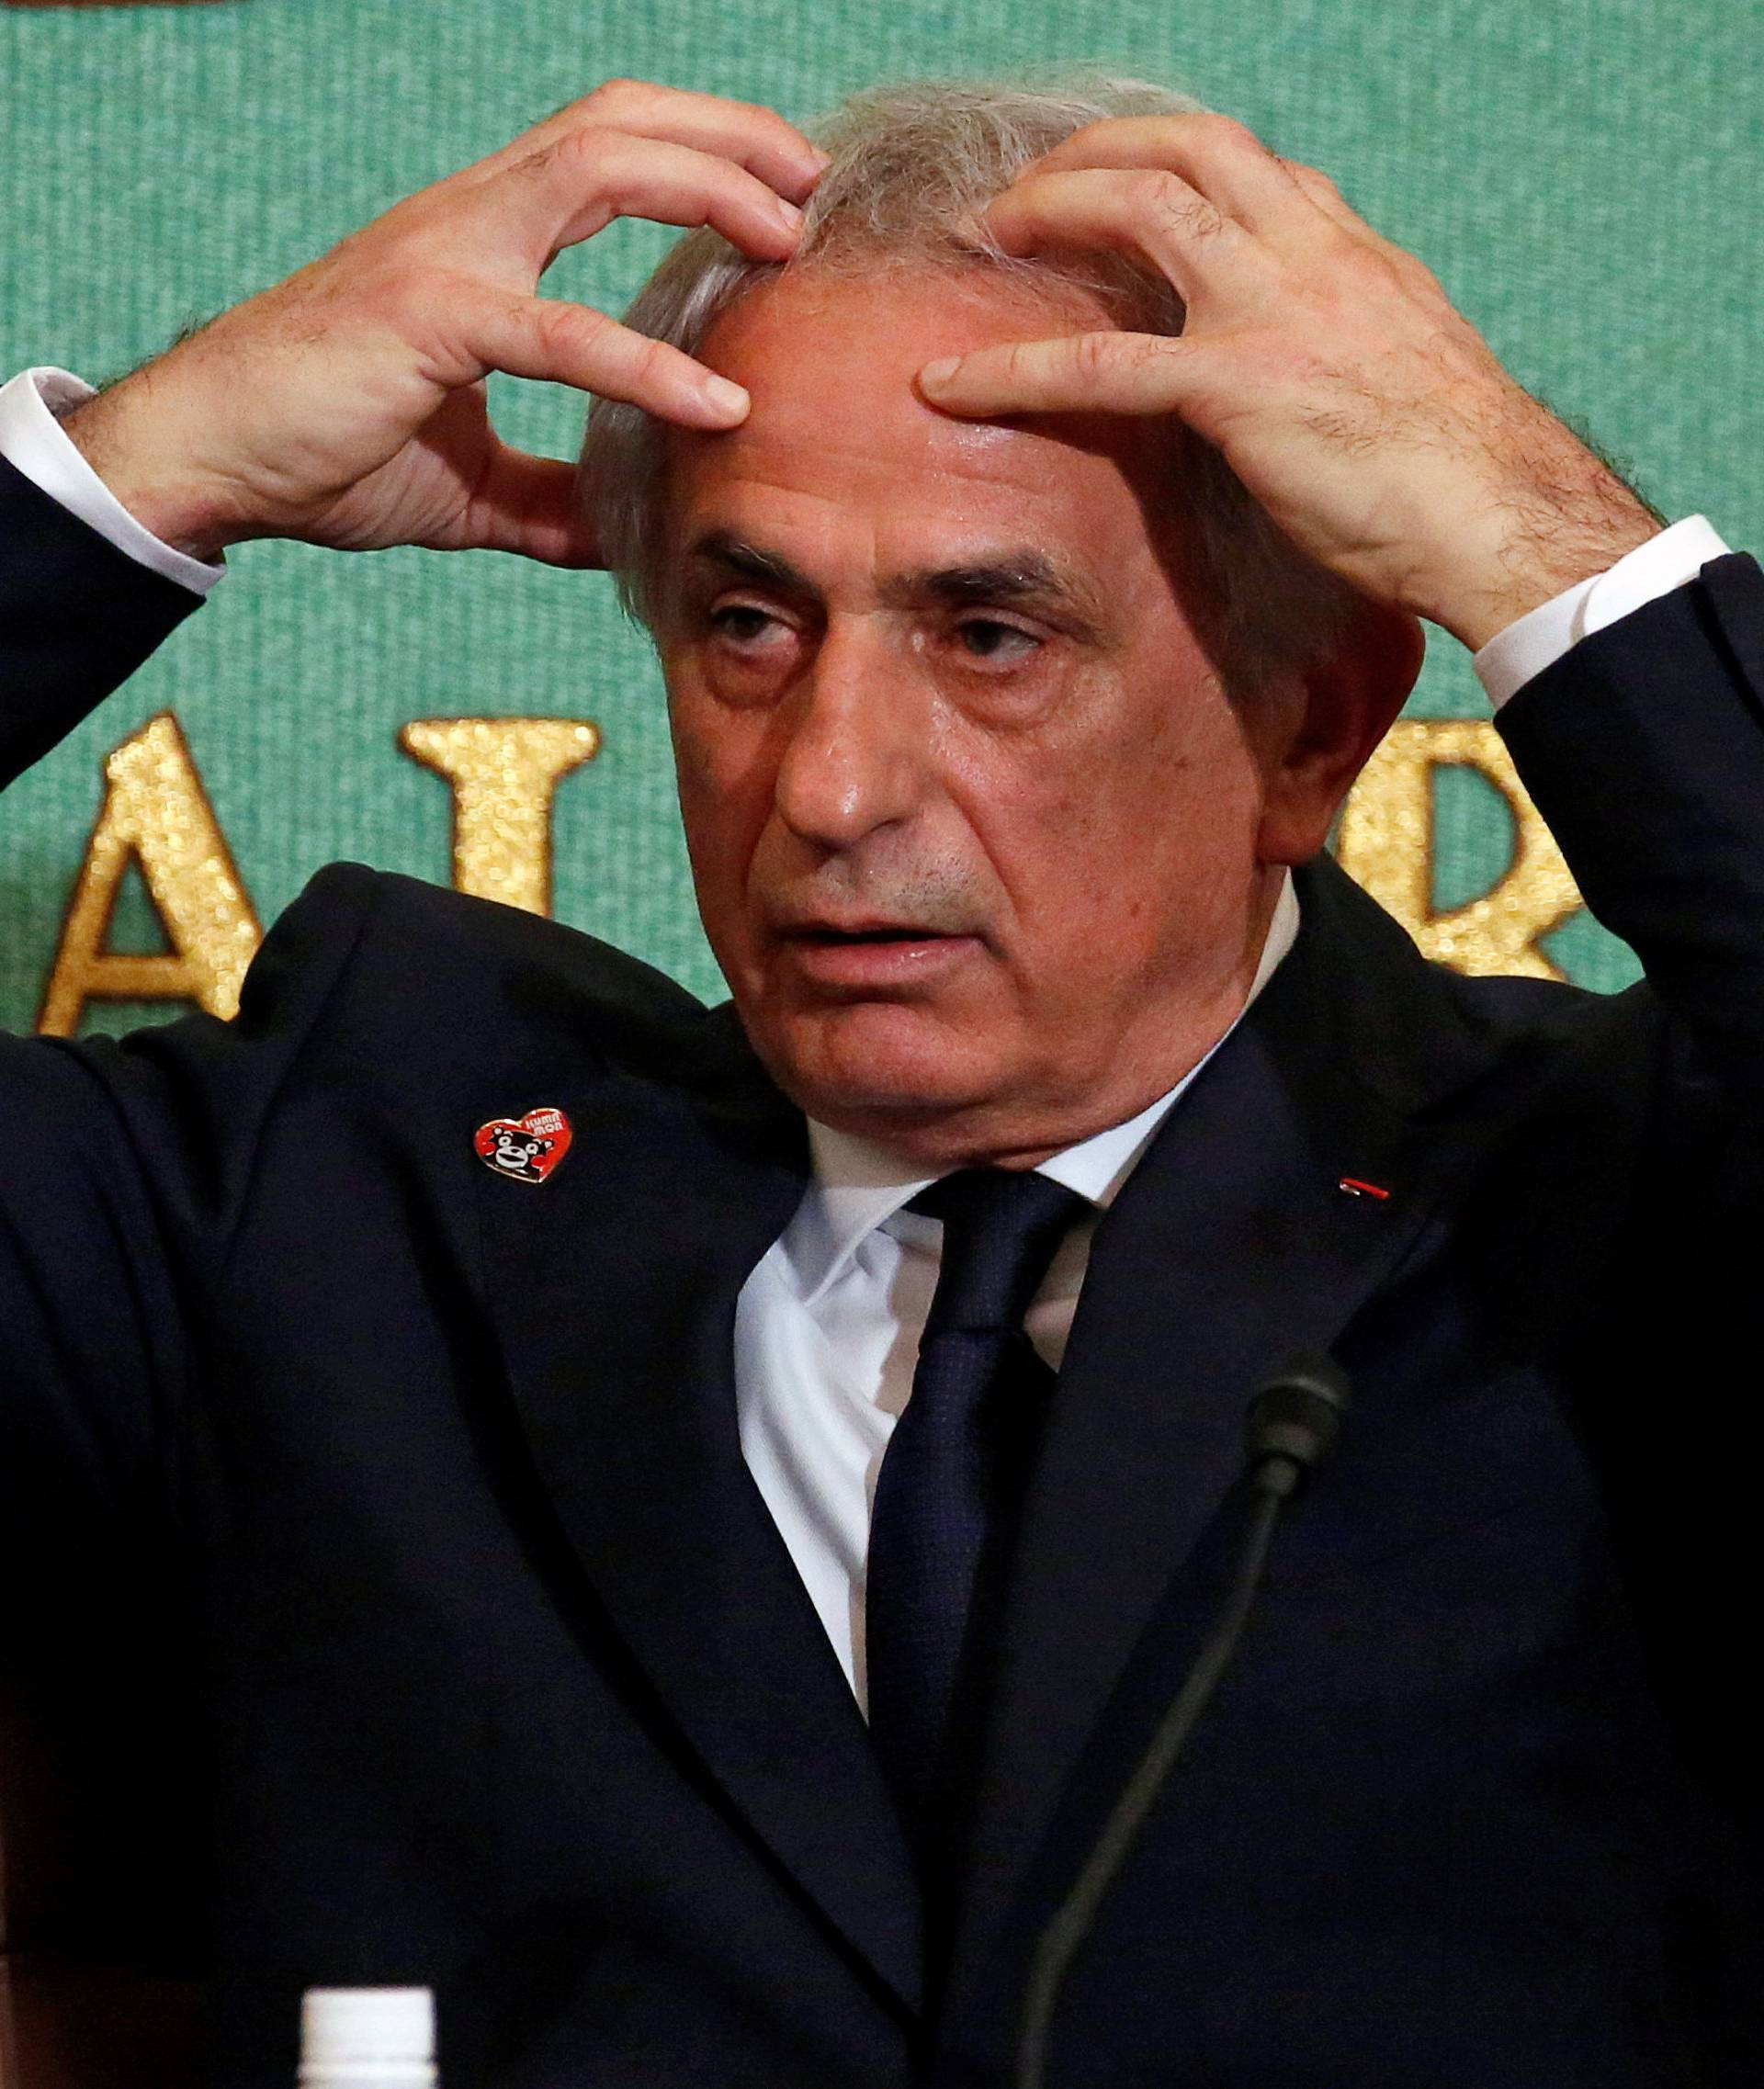 Vahid Halilhodzic attends a news conference at the Japan National Press Club in Tokyo